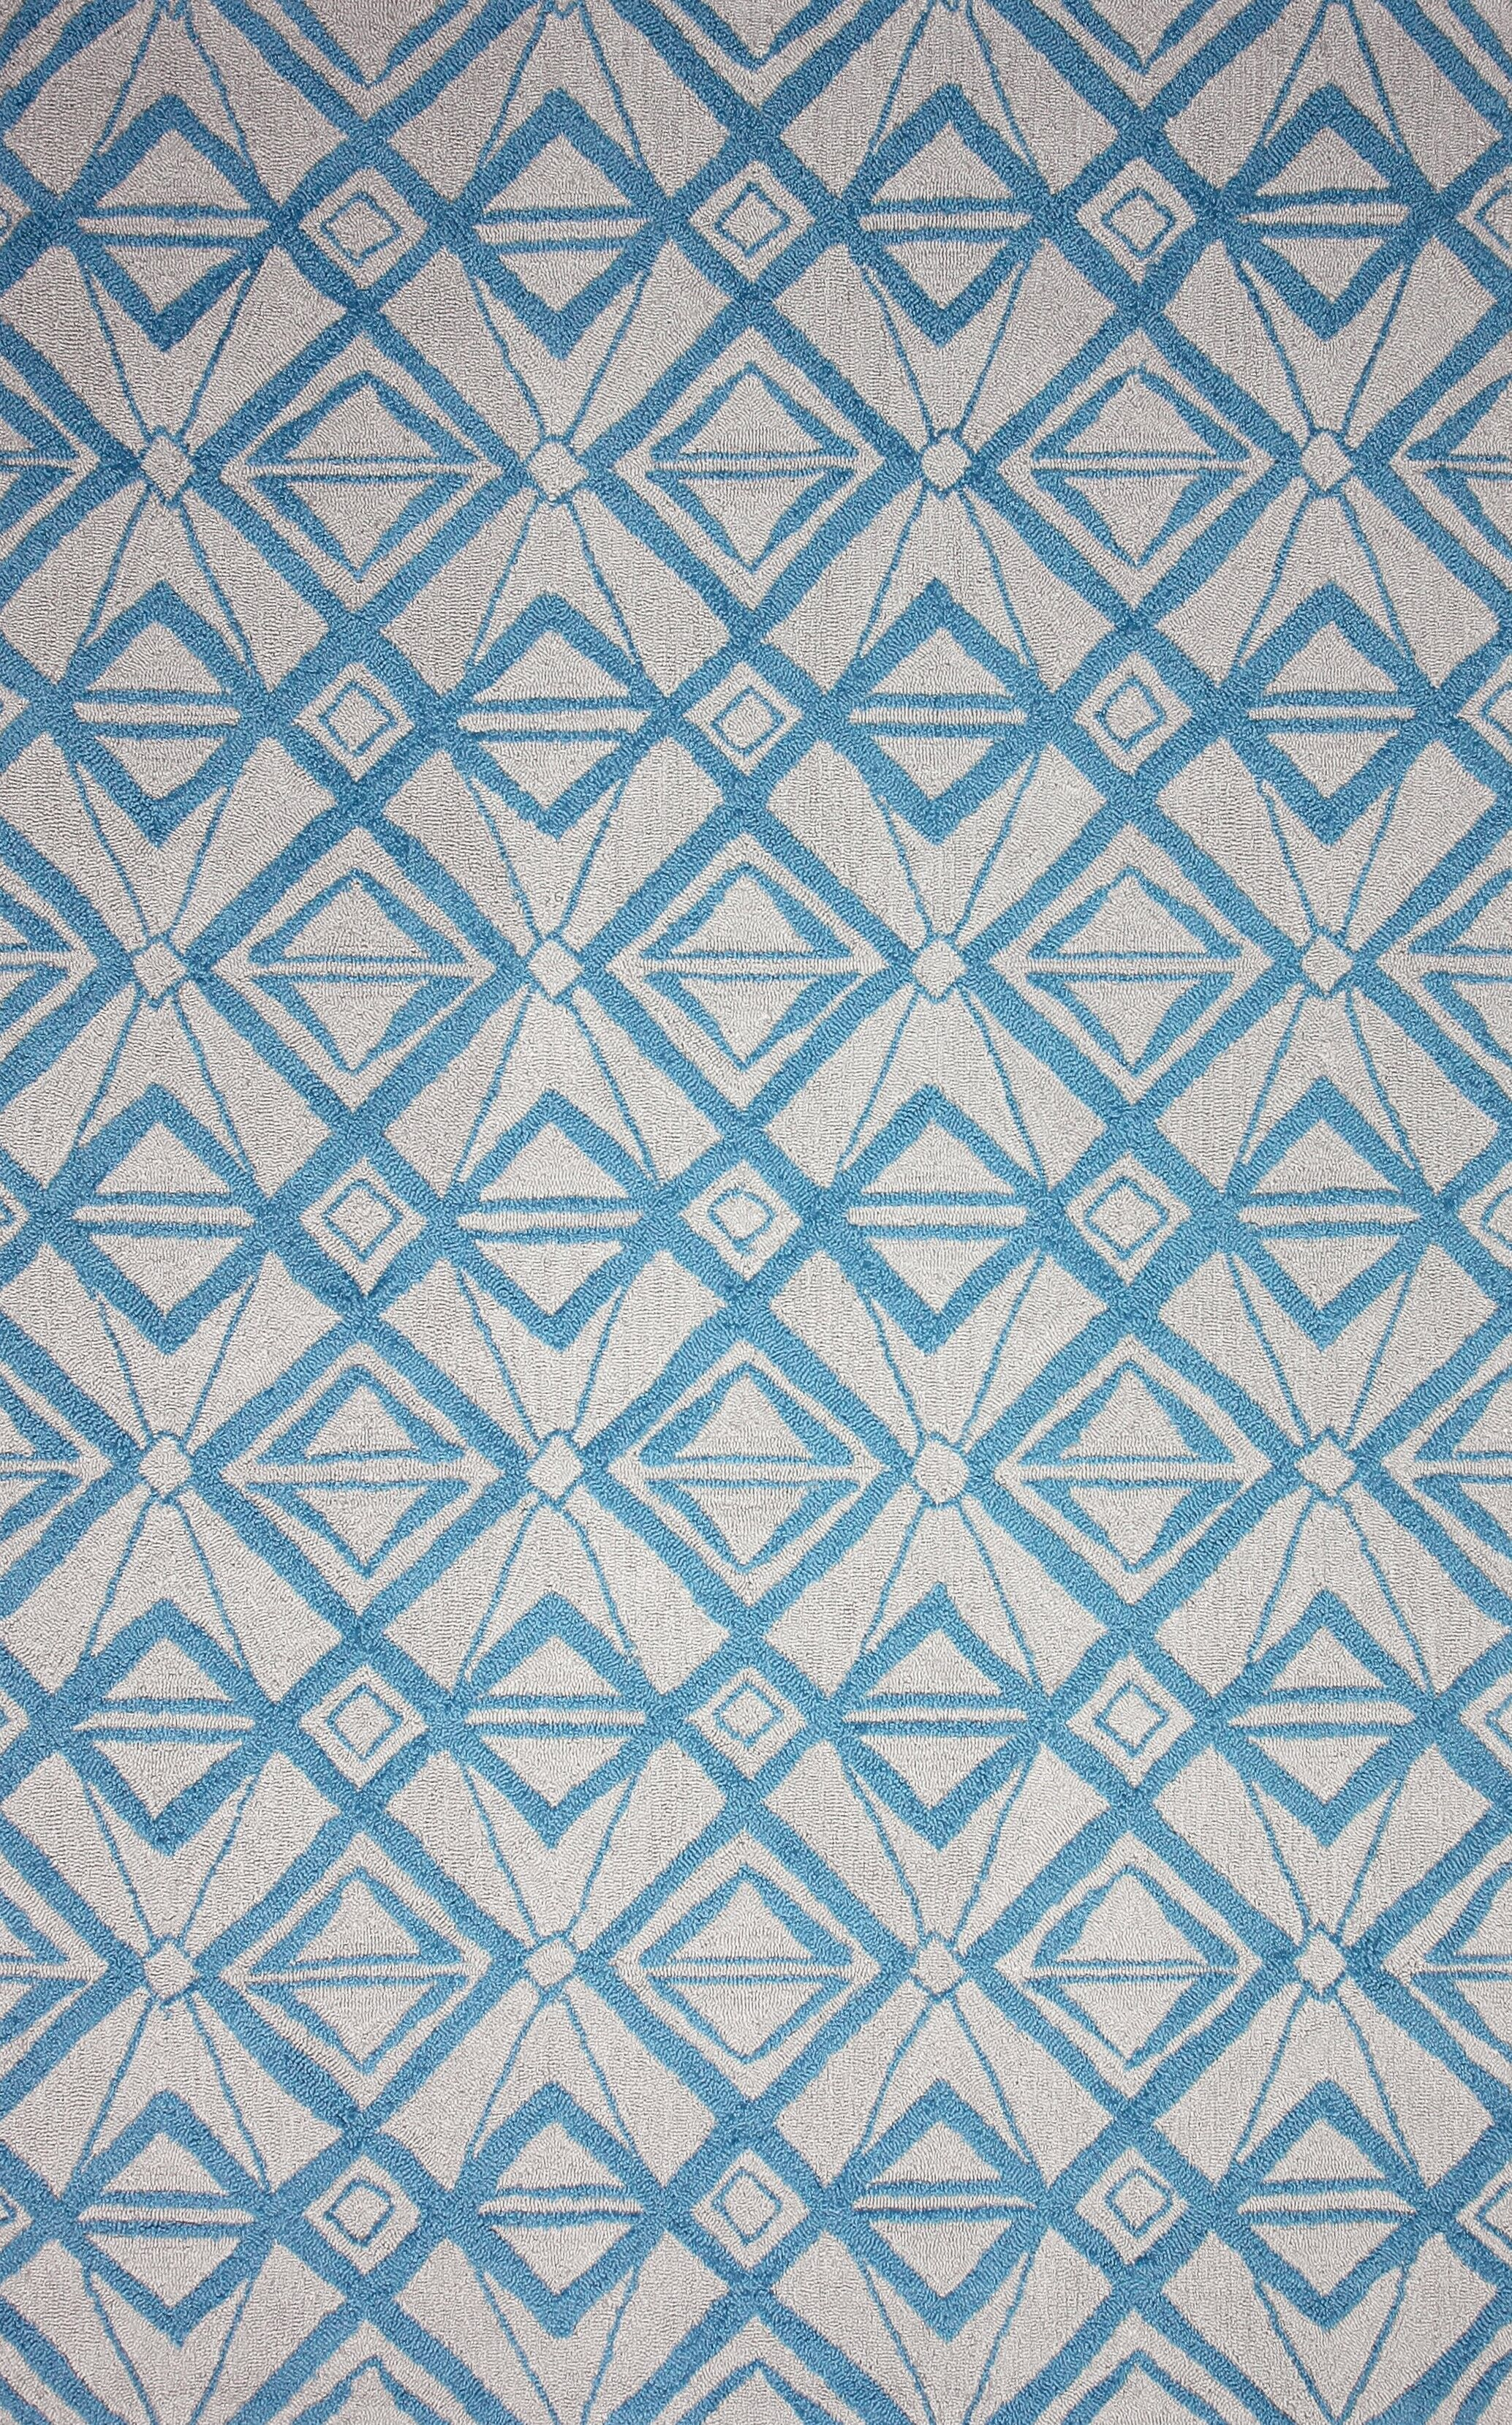 Novel Imture Hand-Hooked Light Blue Outdoor Area Rug Rug Size: Rectangle 7'6